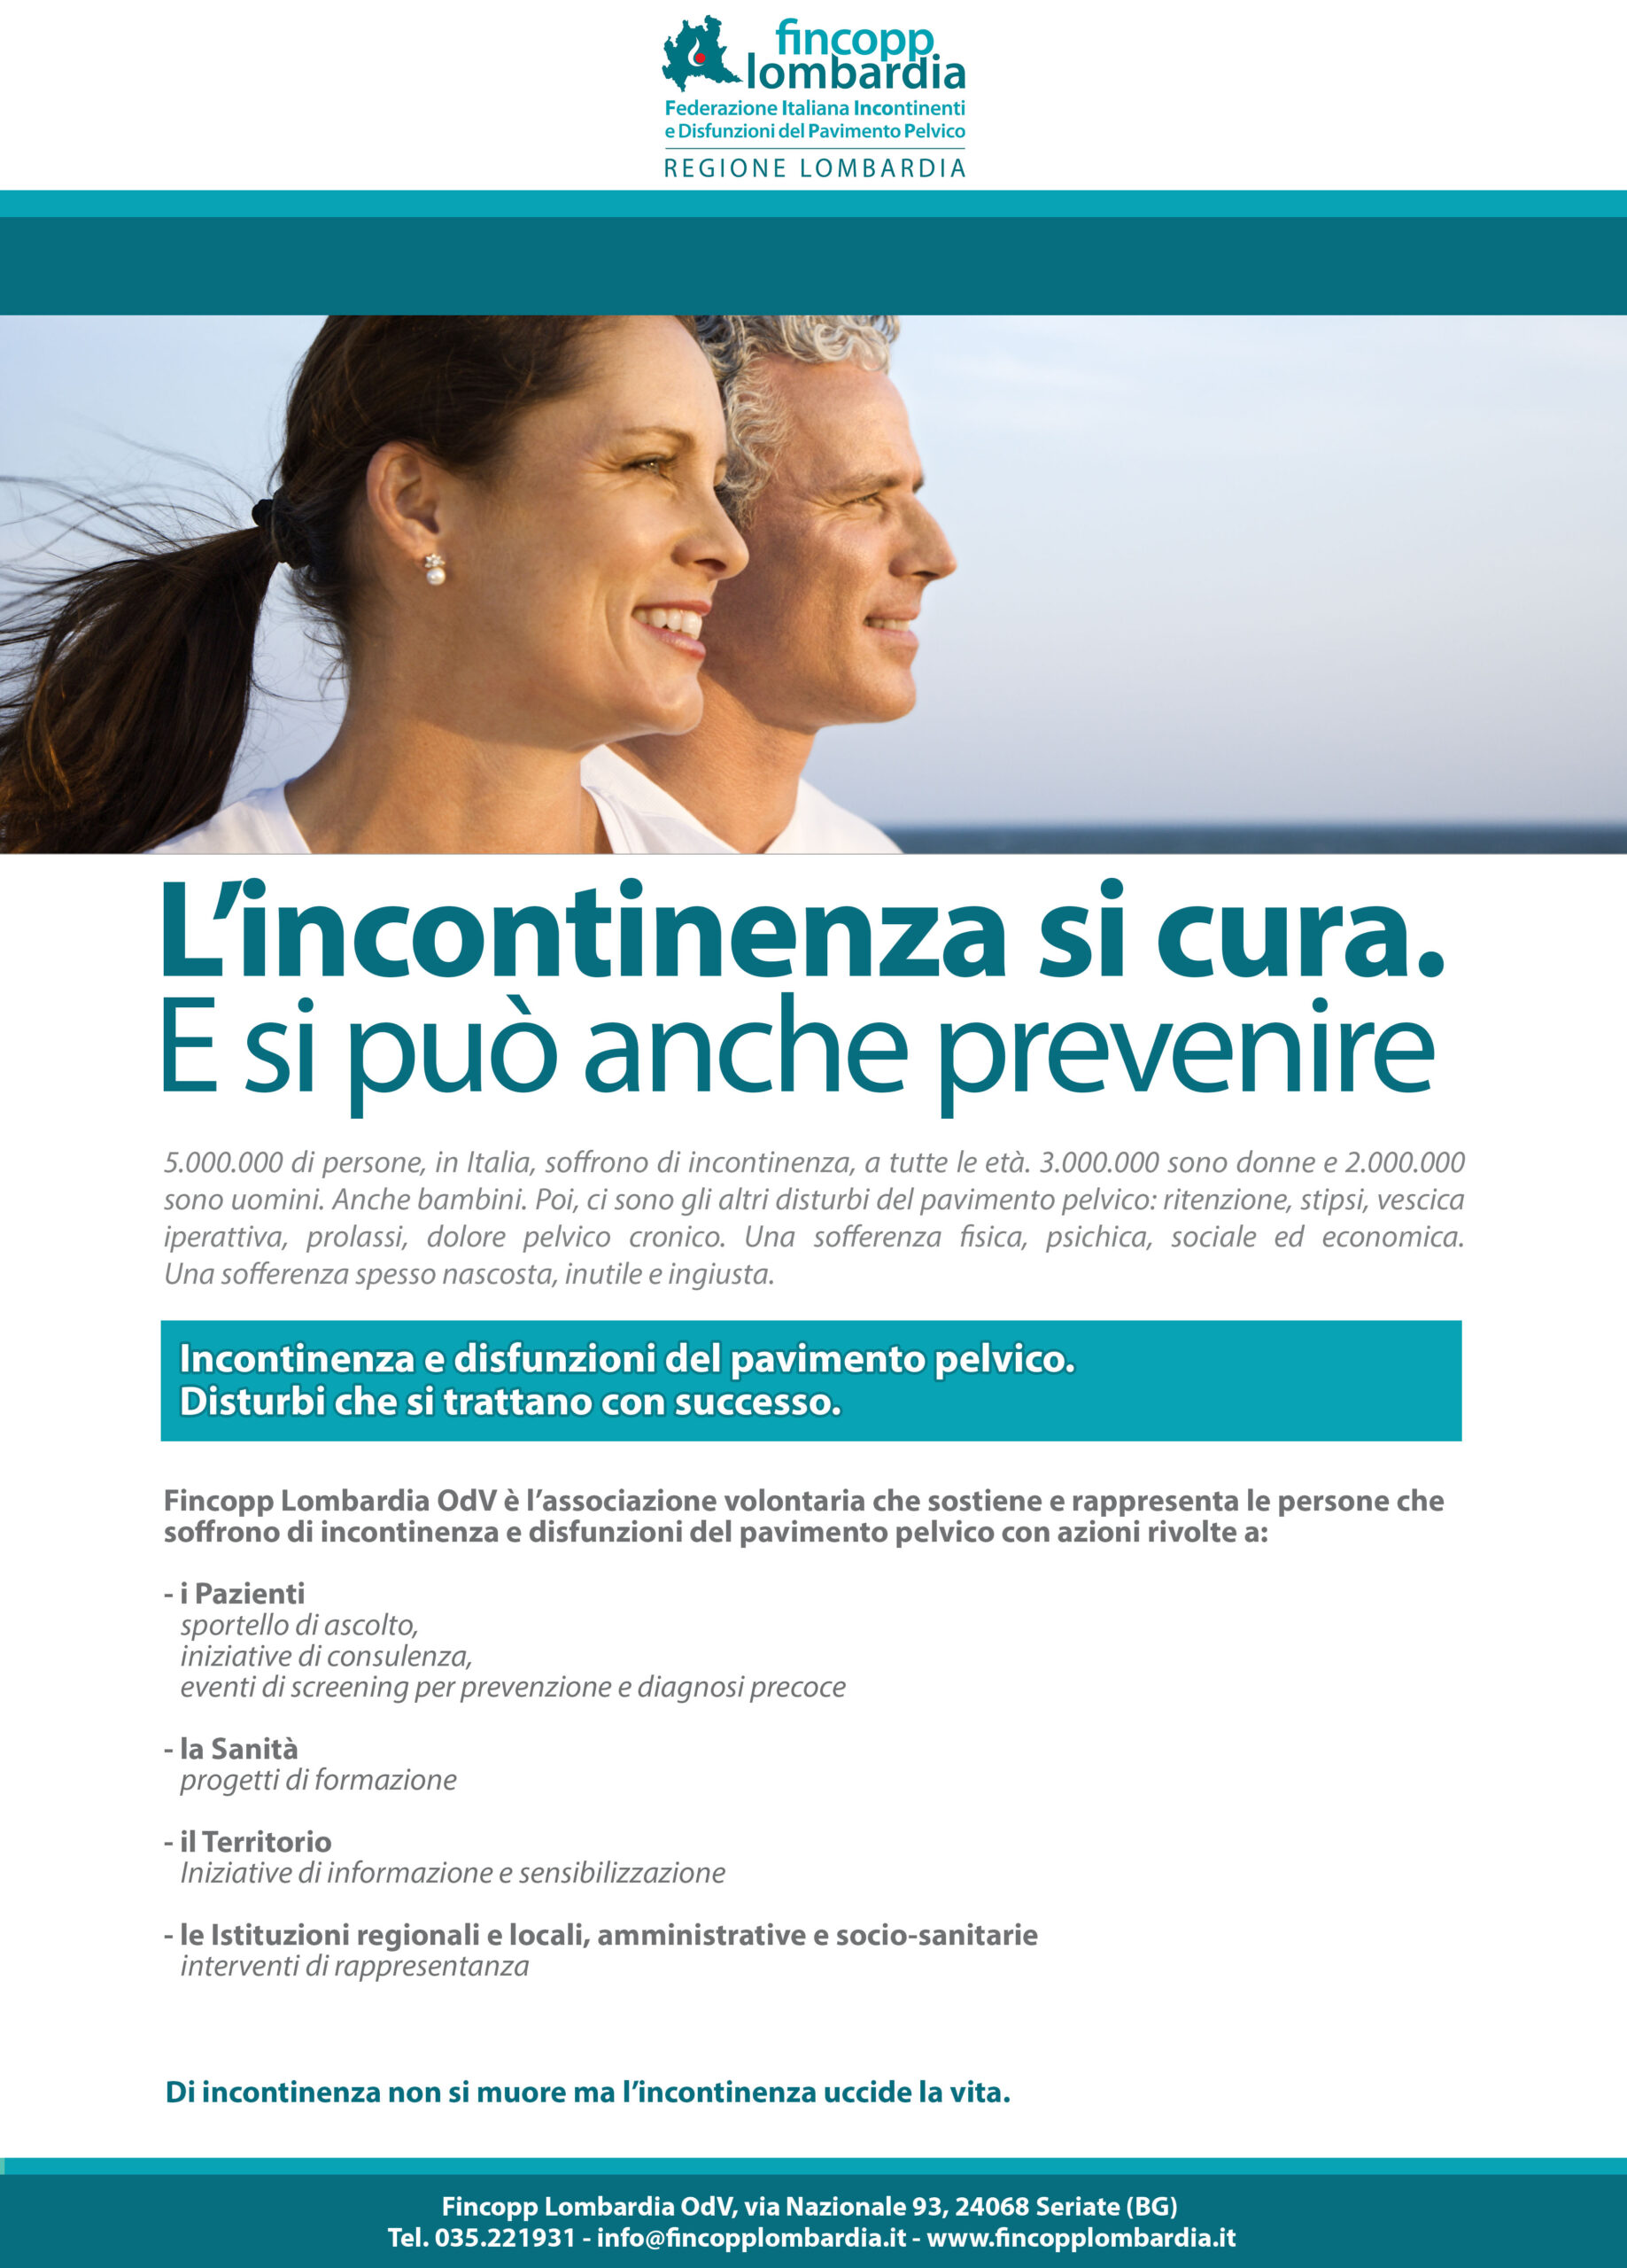 You are currently viewing Fincopp Lombardia cosa, come, perché